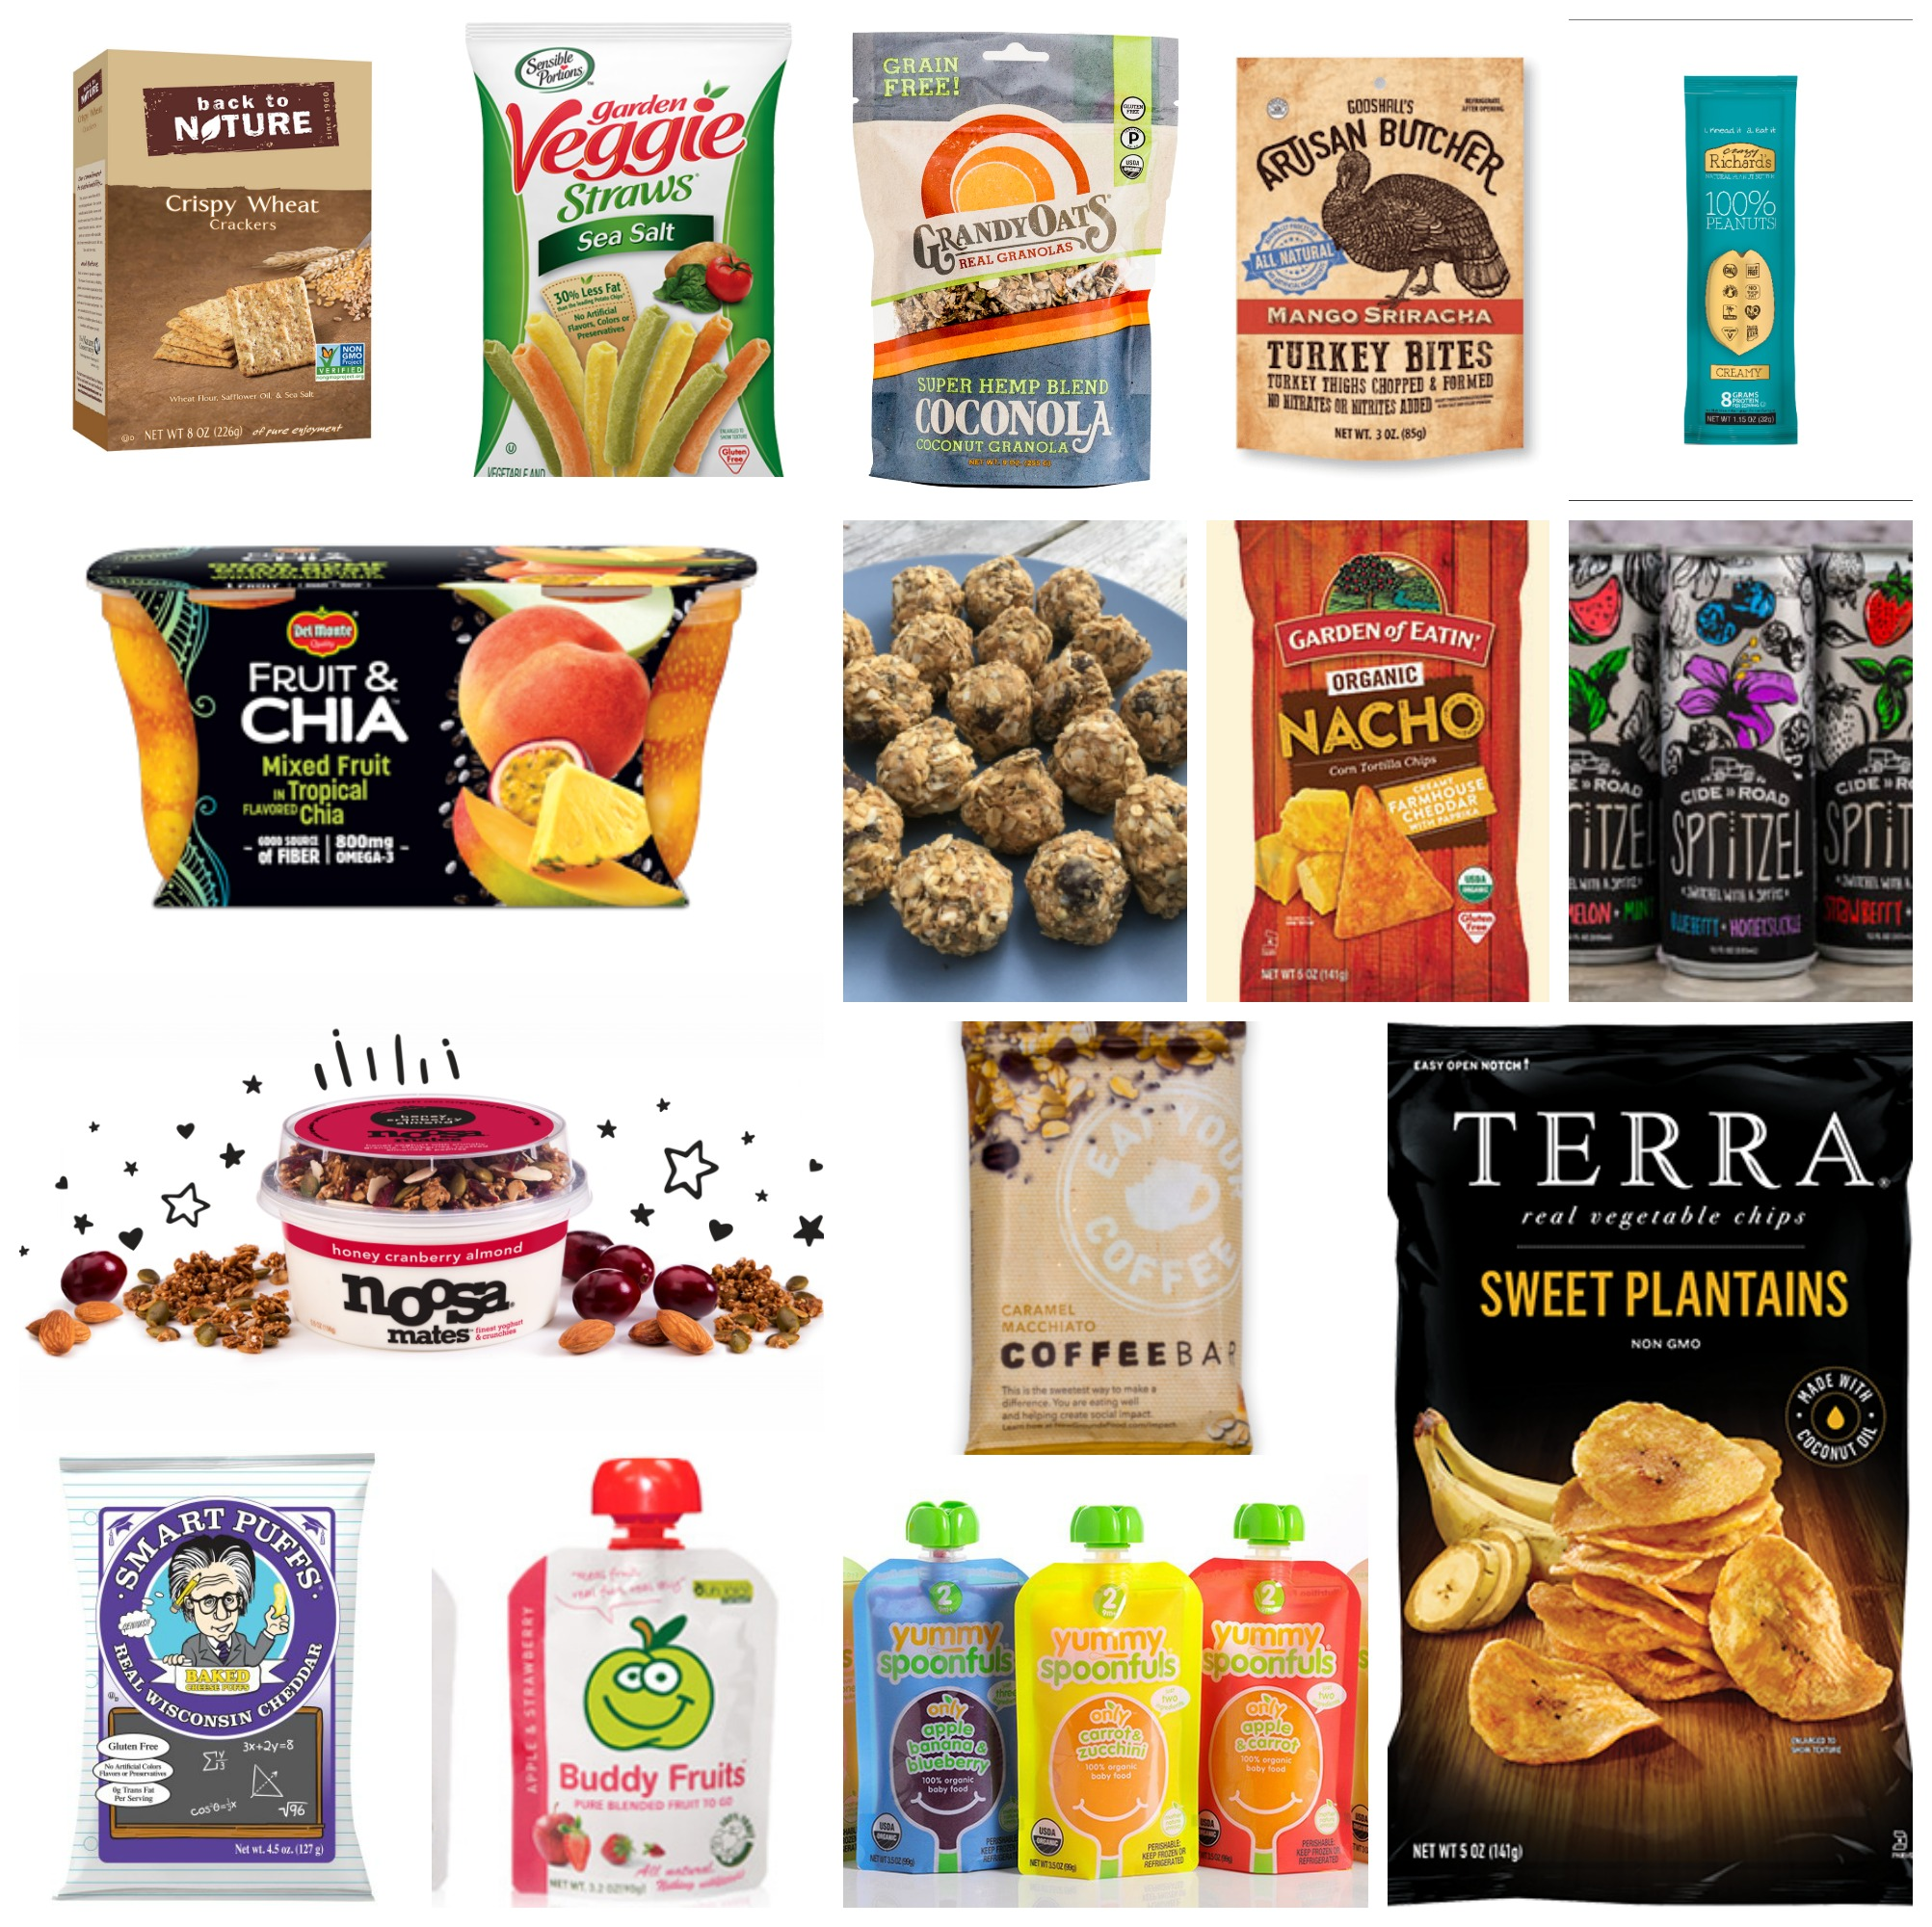 road trip snacks: Packaged Snacks for the Road